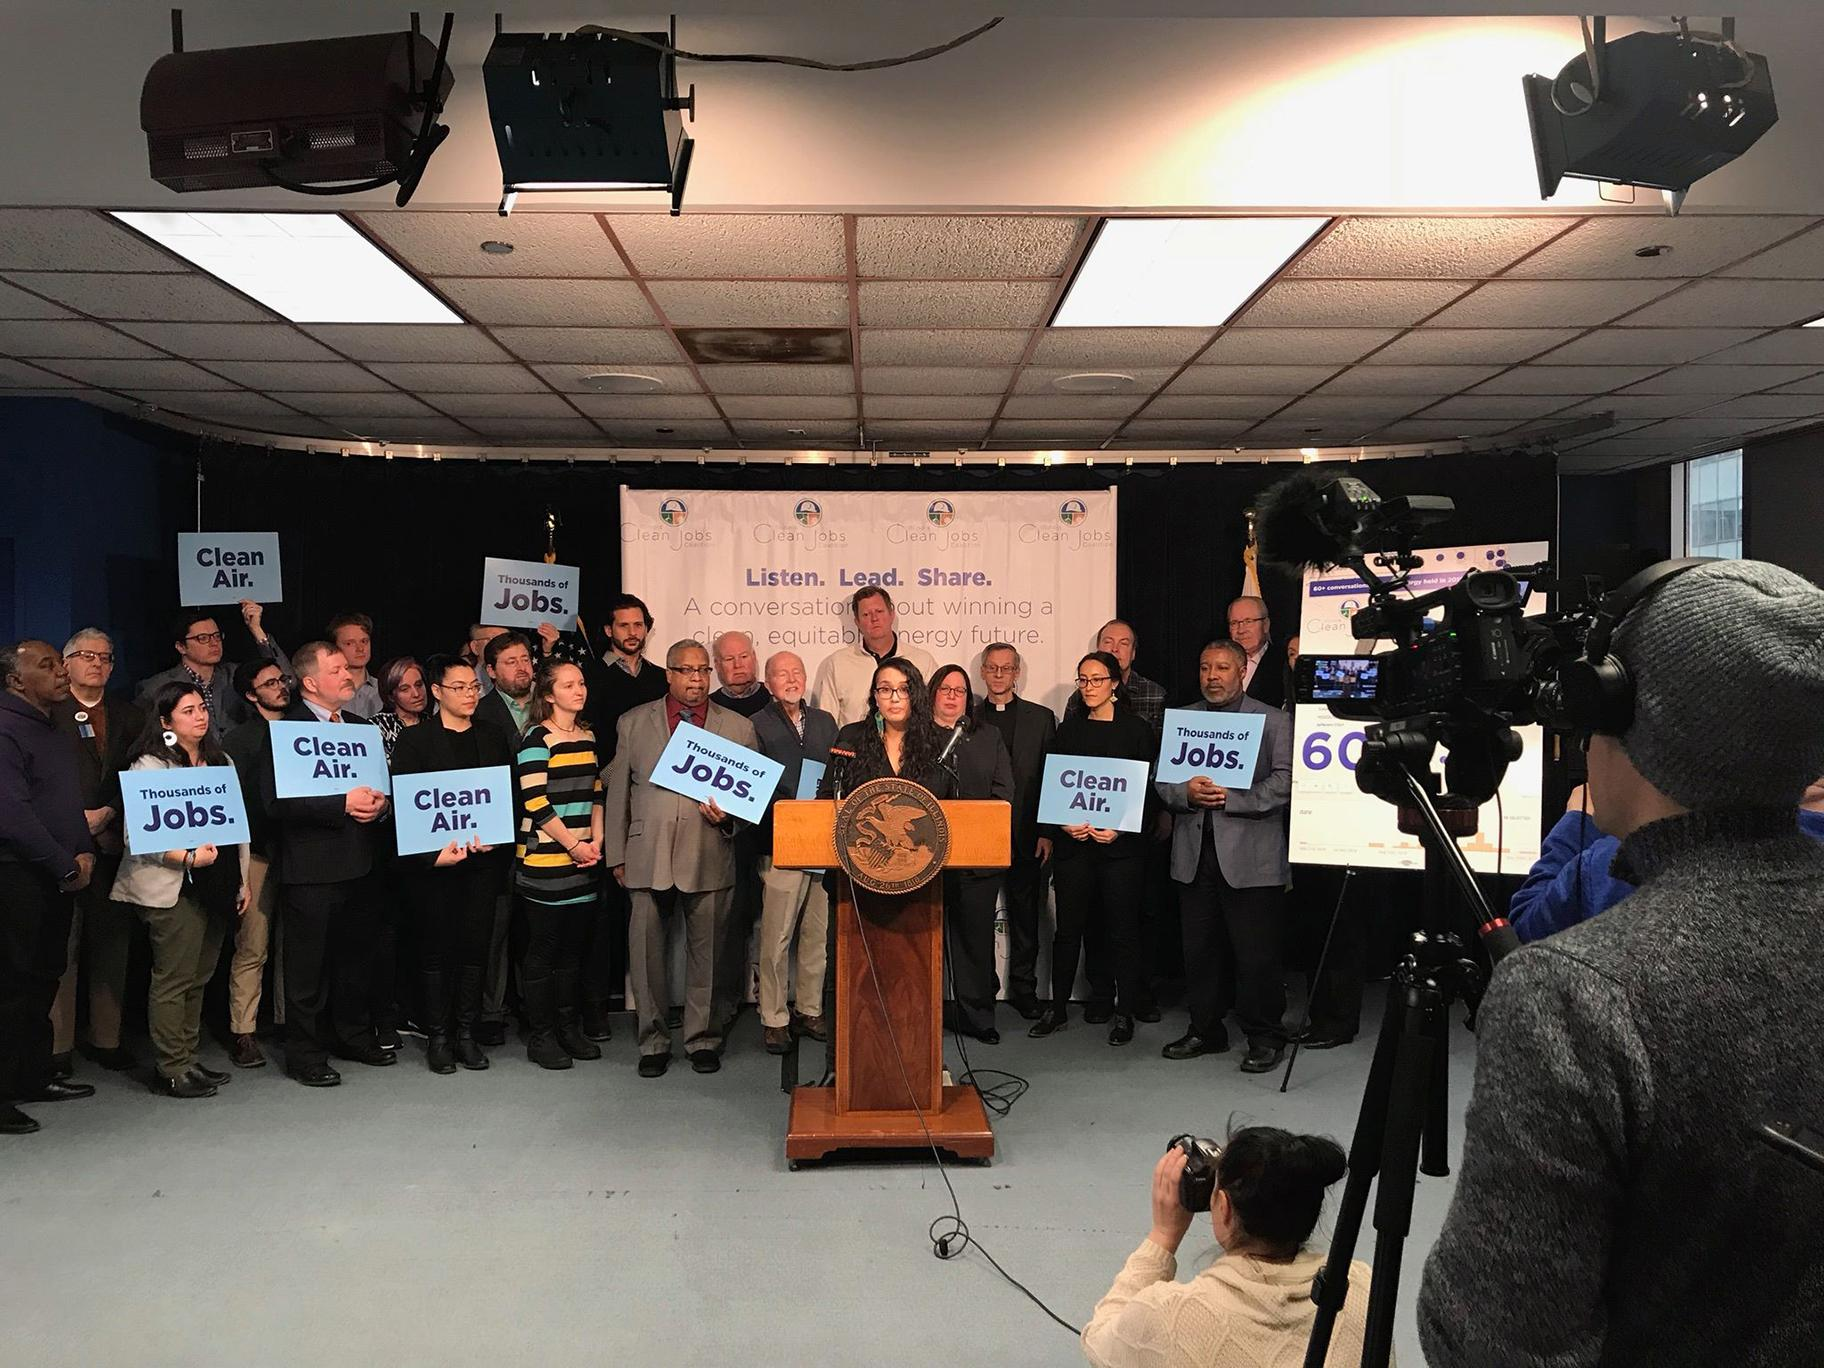 Supporters of a new clean energy bill at a press conference on Feb. 28, 2019 in Chicago (Courtesy Illinois Clean Jobs Coalition)